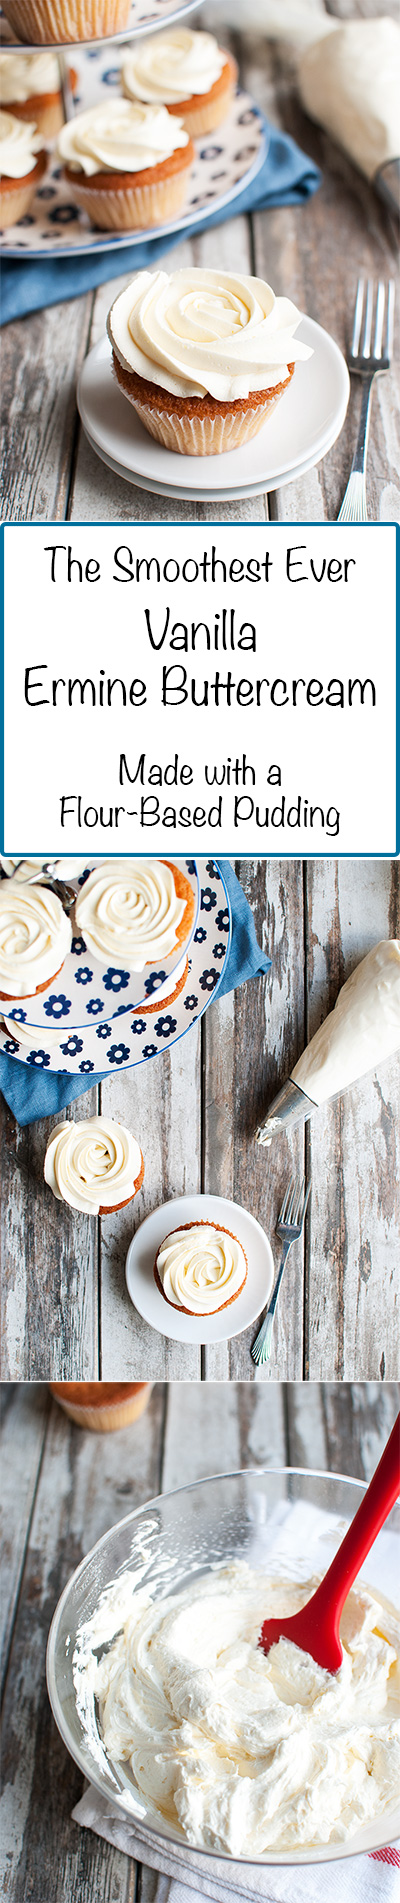 Less Sweet Flour Buttercream (aka: Ermine Buttercream) - This is the less sweet version of my famous flour buttercream. It's supersmooth, because it doesn't contain powdered sugar and is instead pudding-based! | thetoughcookie.com